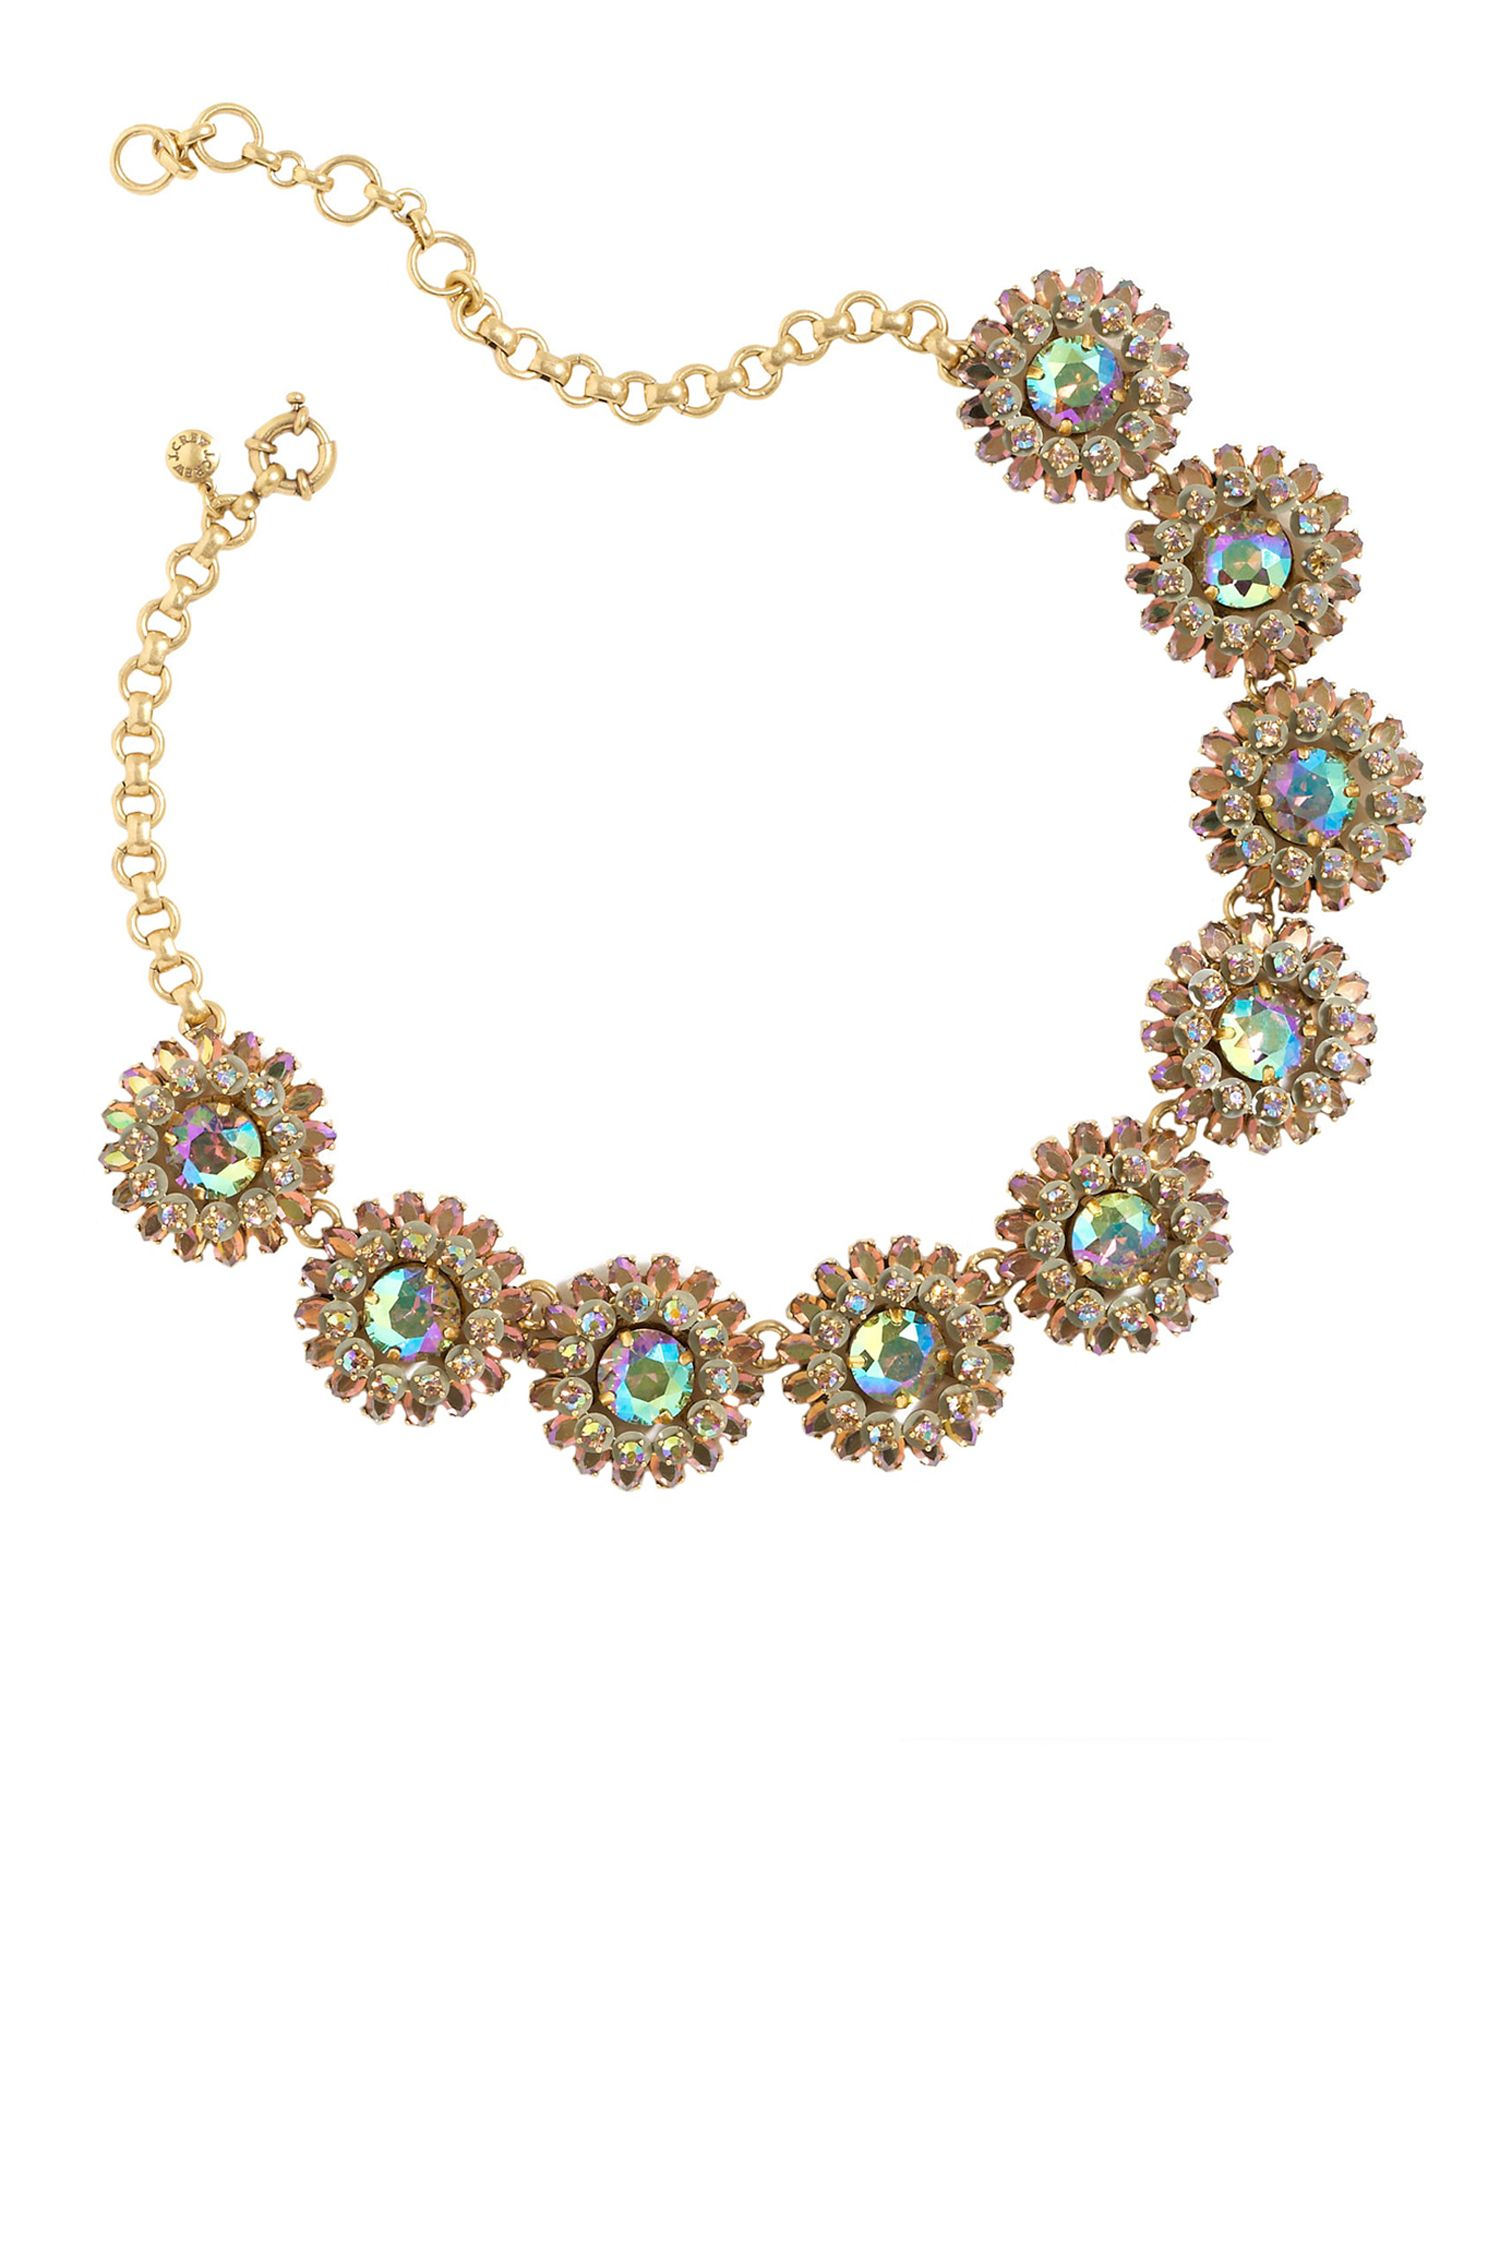 """<p>Sometimes a super-colorful necklace and a bold red lip are all it takes to totally transform a look. Yesterday's navy shift dress? Add this eye-catching statement necklace and we can almost guarantee it's all anyone in your office will be looking at. </p><p><br></p><p><em>Crystal Motif Necklace, $128&#x3B; <a href=""""https://www.jcrew.com/womens_category/jewelry/necklaces/PRDOVR~F3154/F3154.jsp"""" target=""""_blank"""">jcrew.com</a></em><br></p>"""